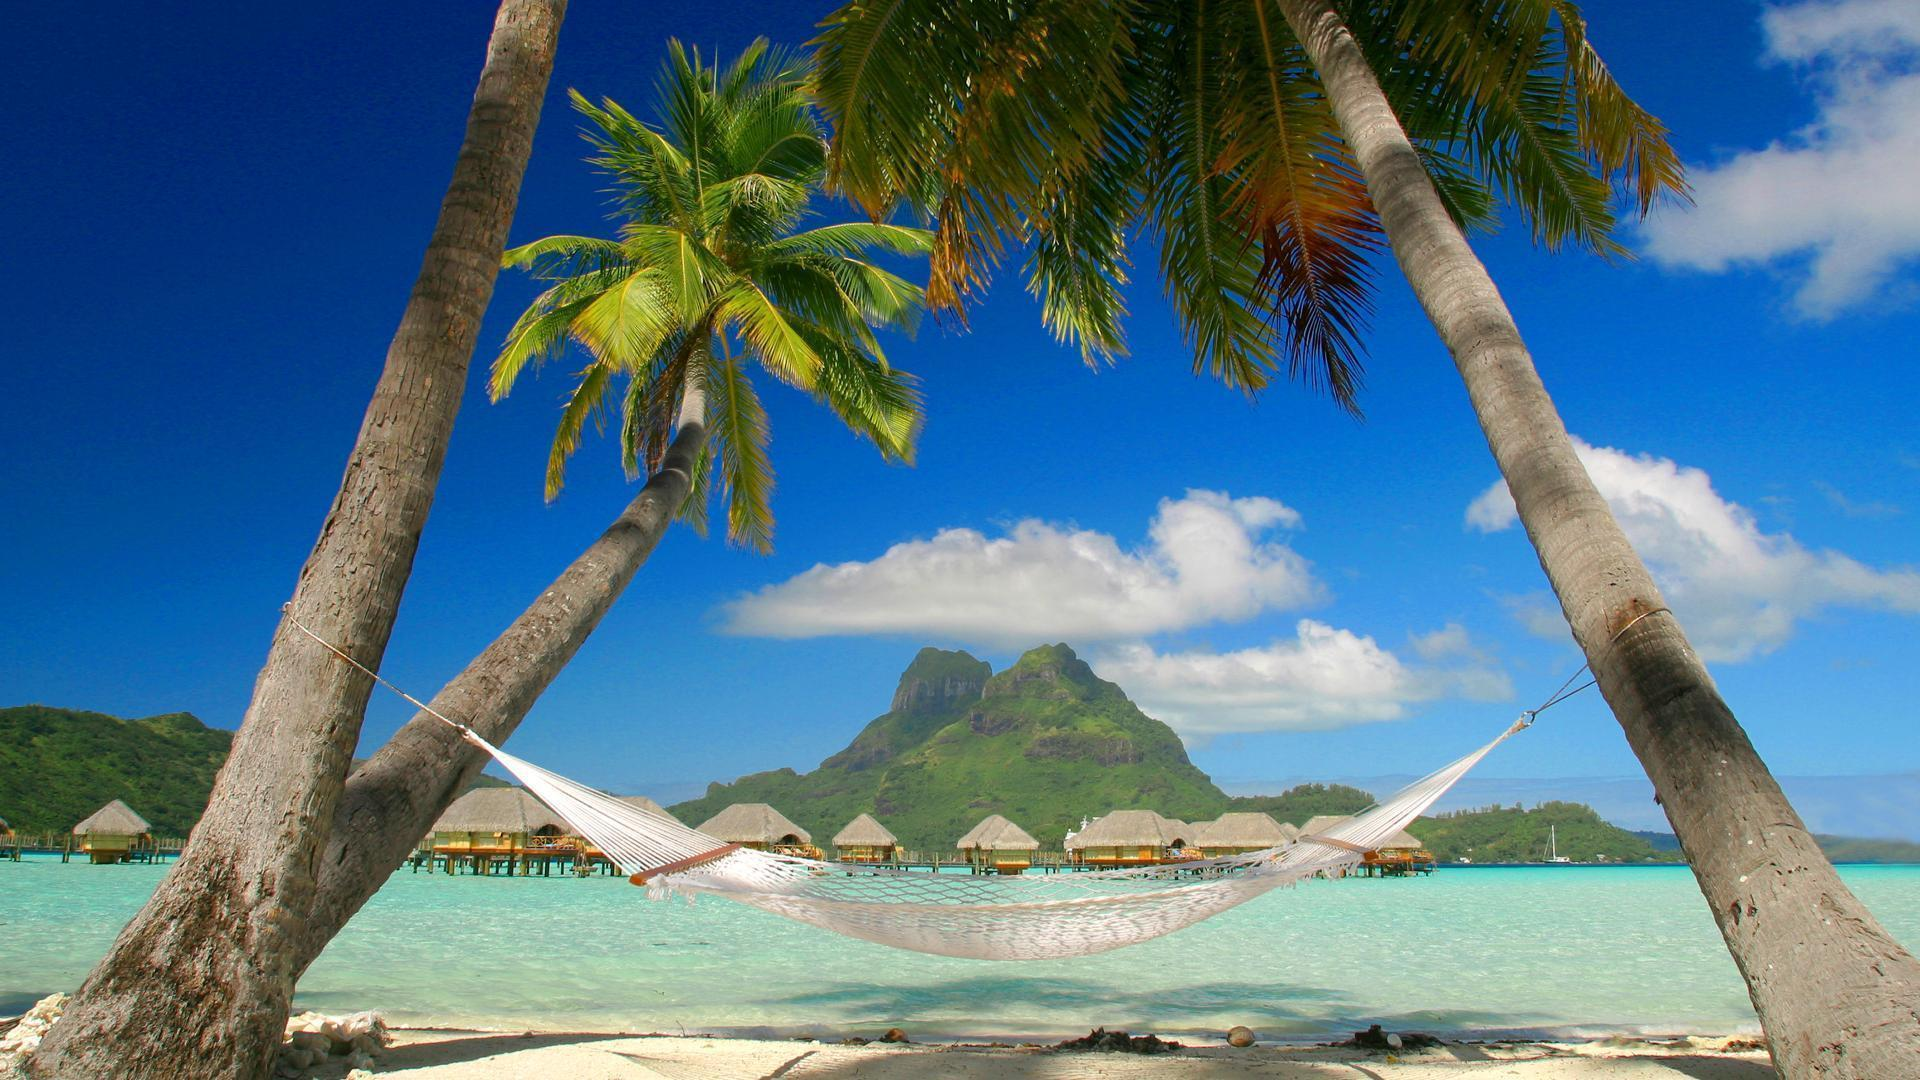 Tropical Beaches Wallpaper Desktop 19948 Hd Wallpapers in Beach n ...